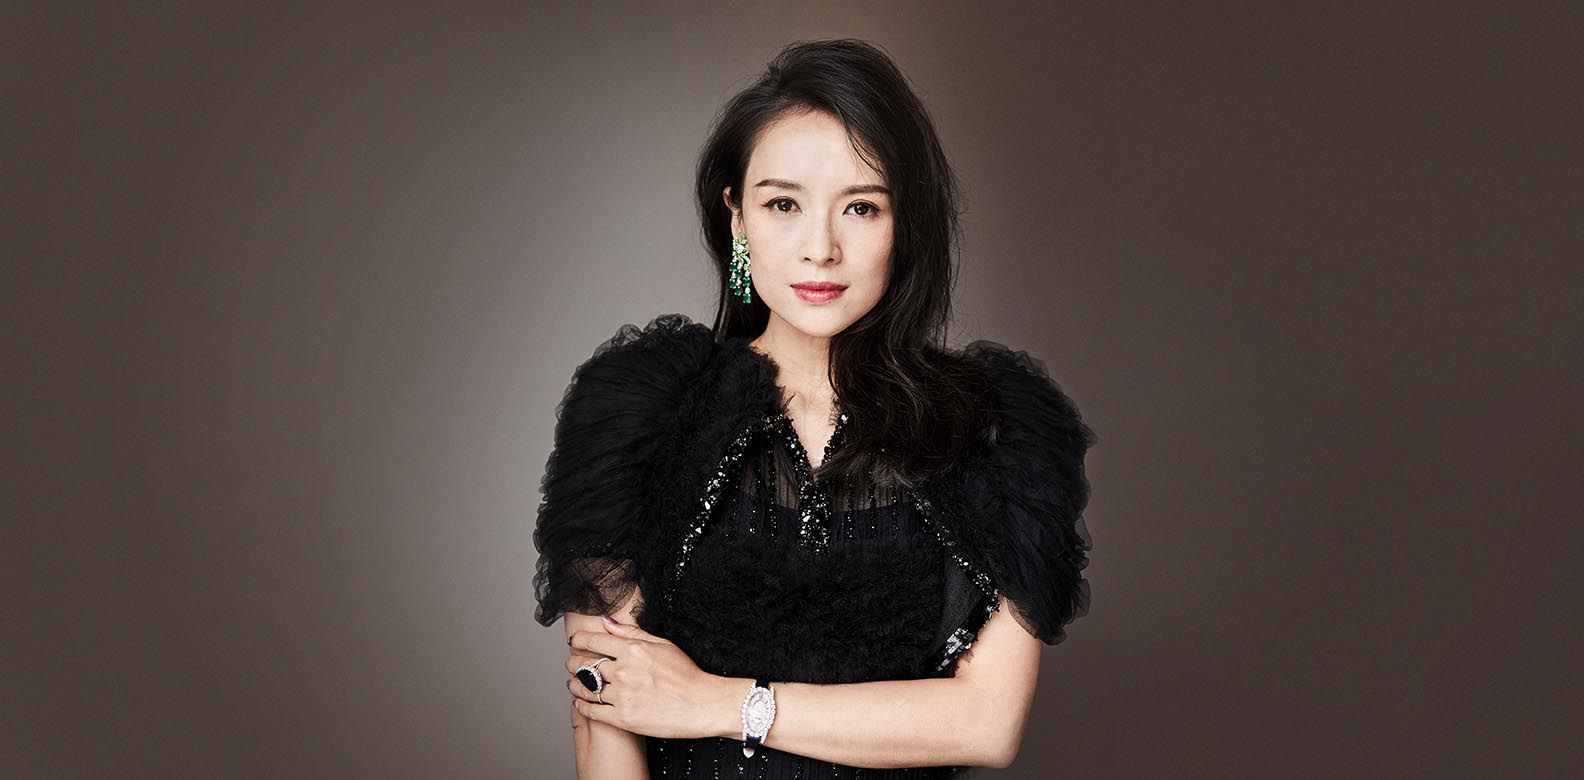 Live From Cannes: Zhang Ziyi Is A Force To Be Reckoned With